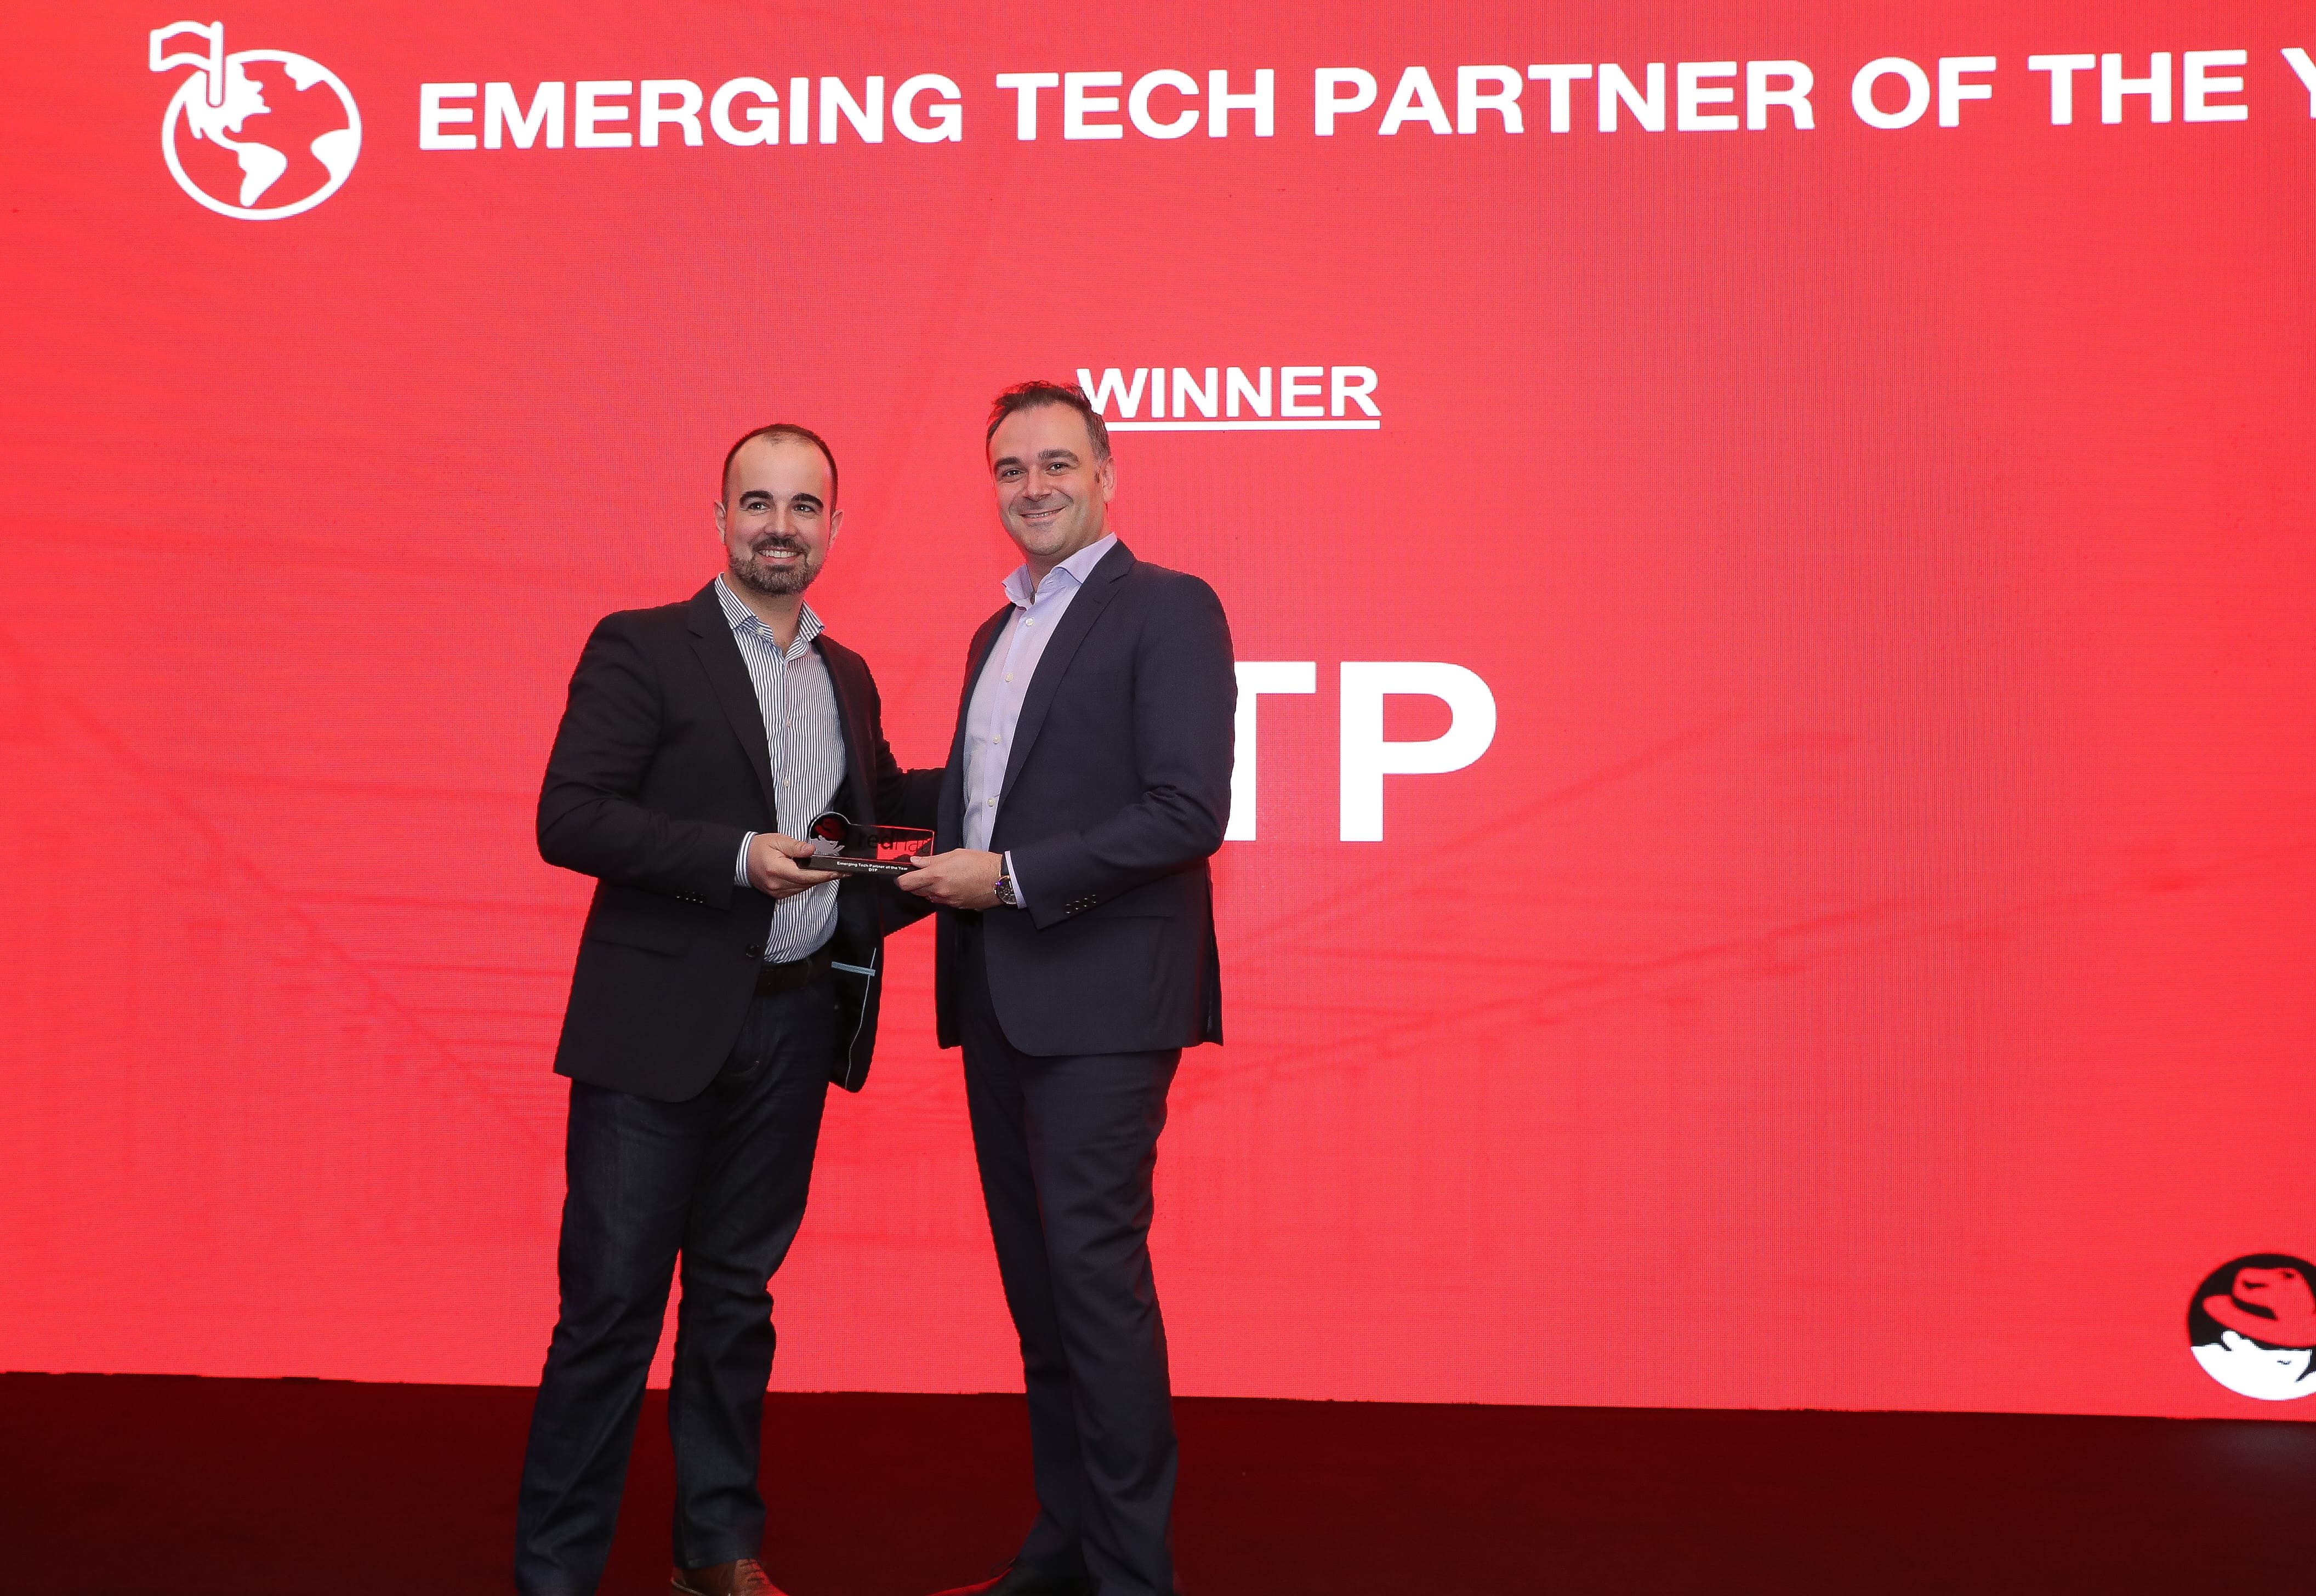 Fawaz Baroud accepts Red Hat's Emerging Tech Partner of the Year Award